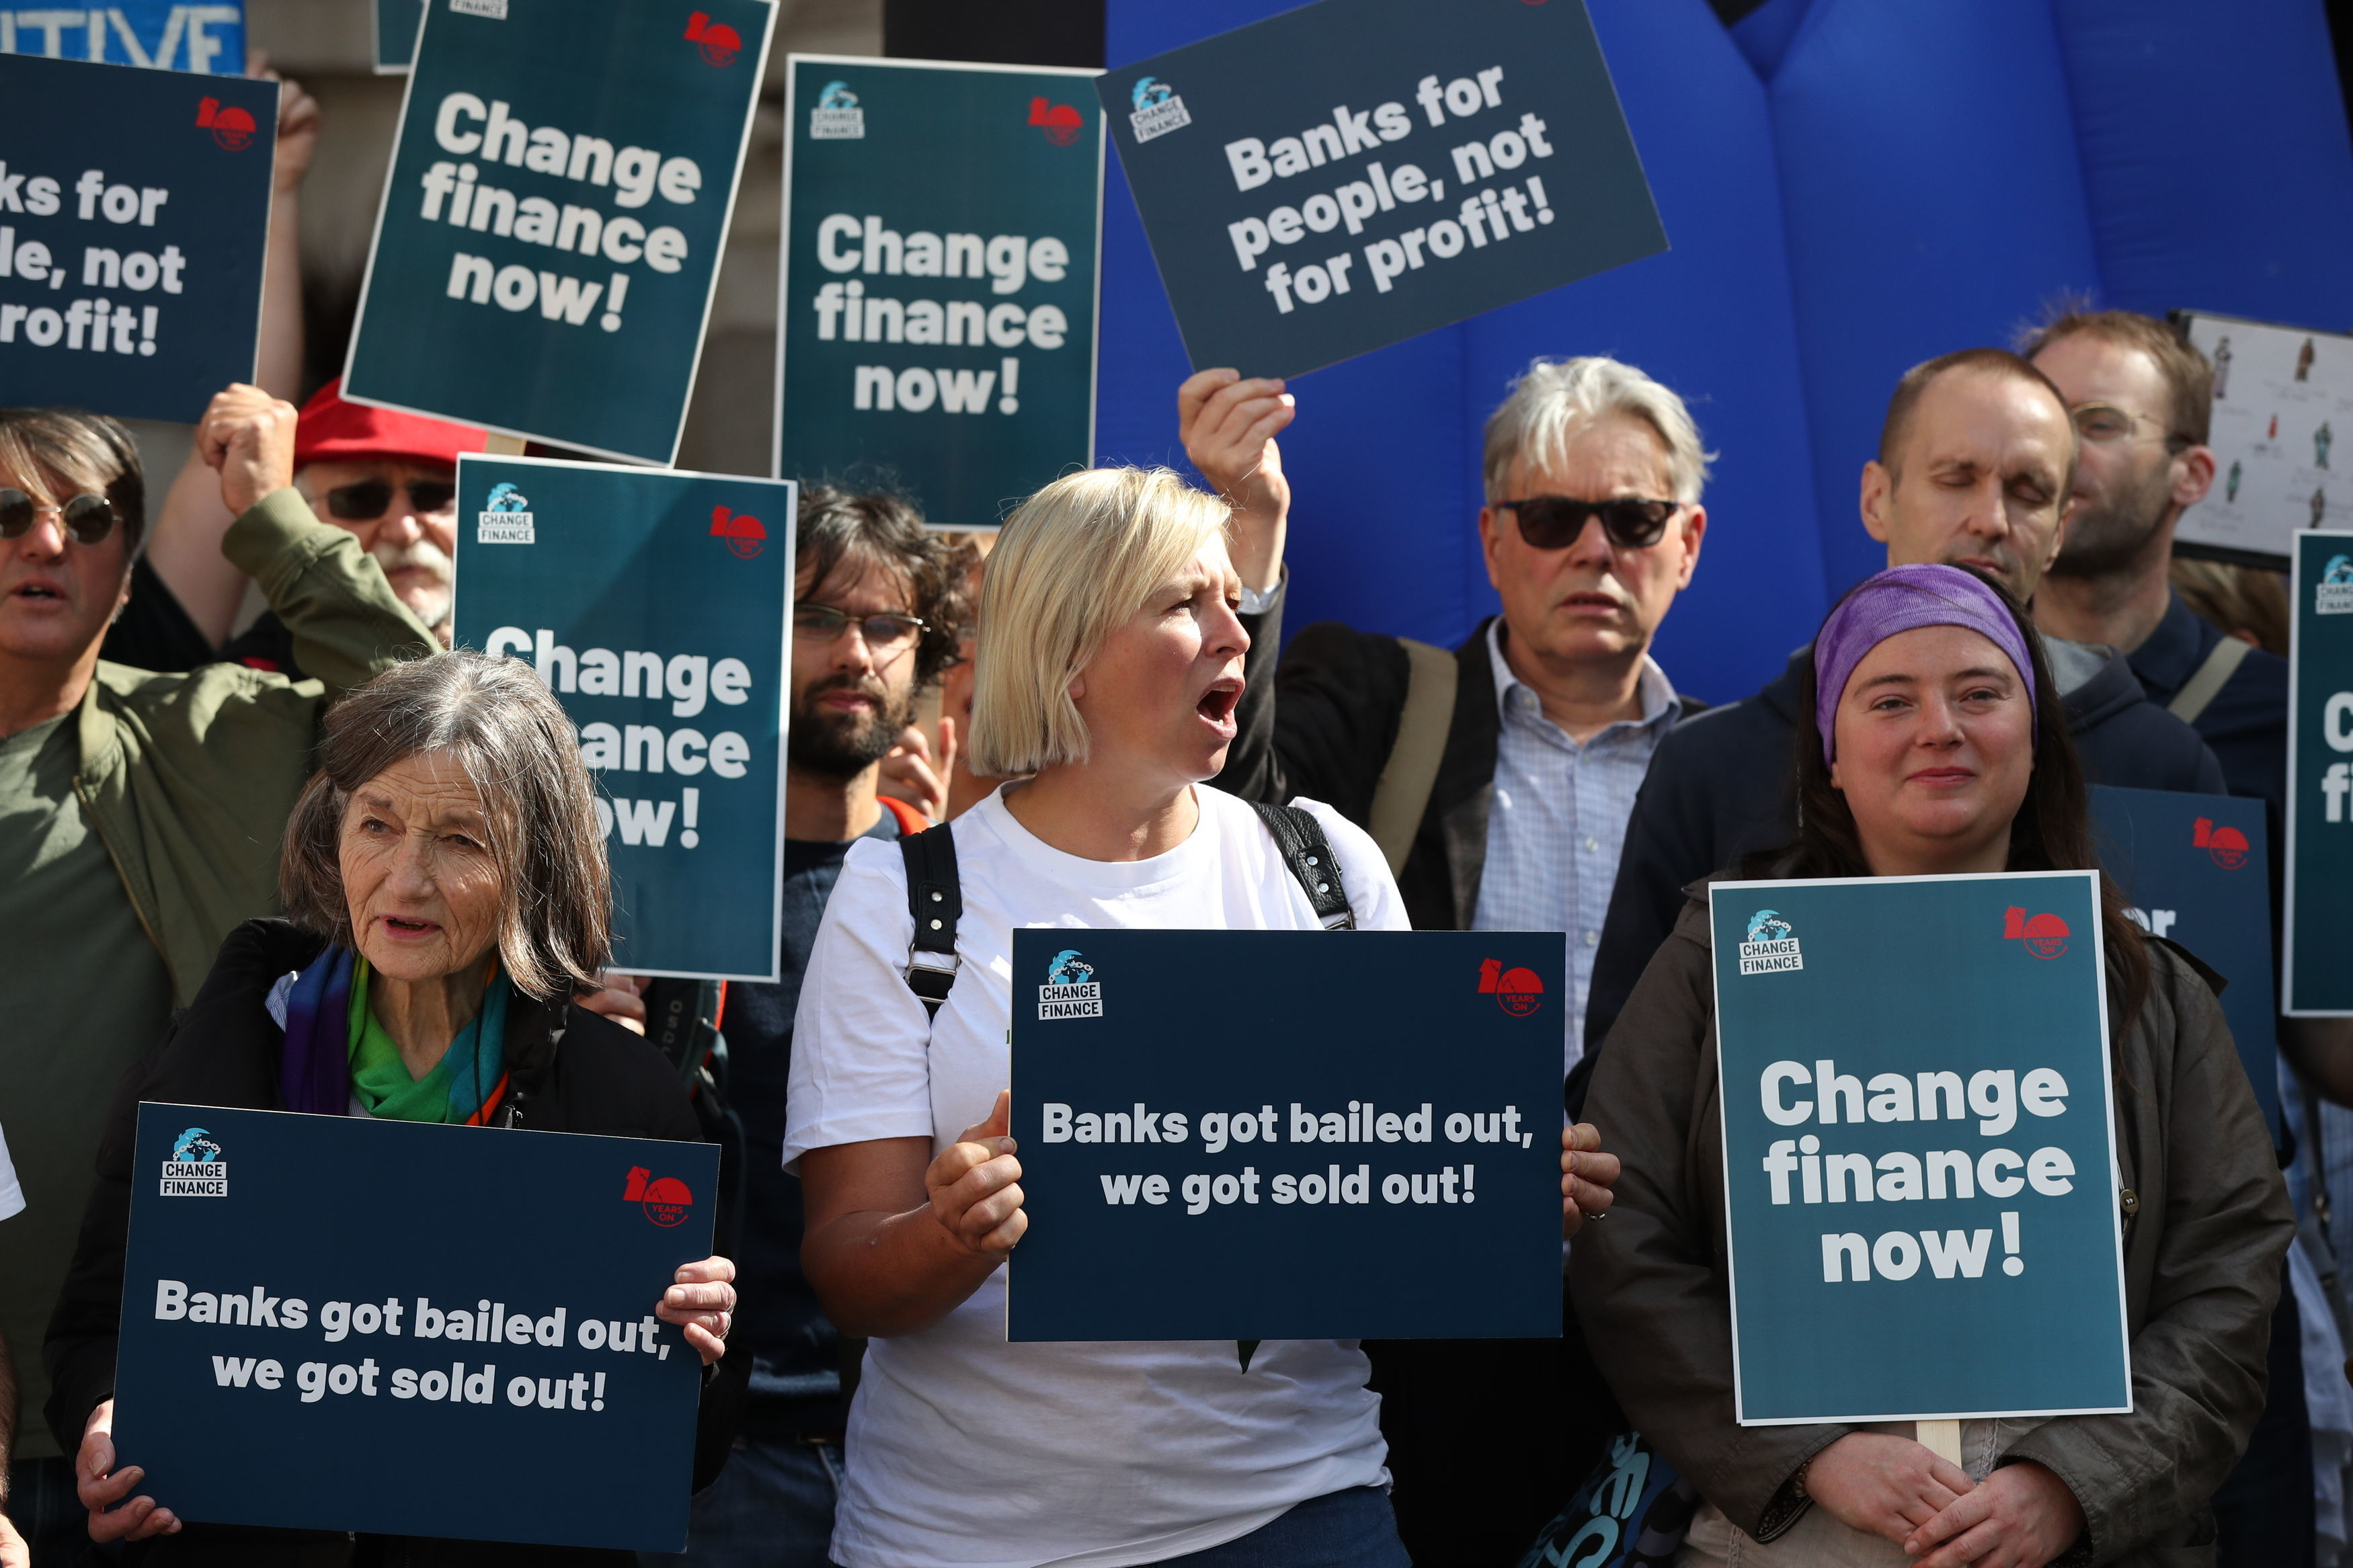 Credit crunch protest